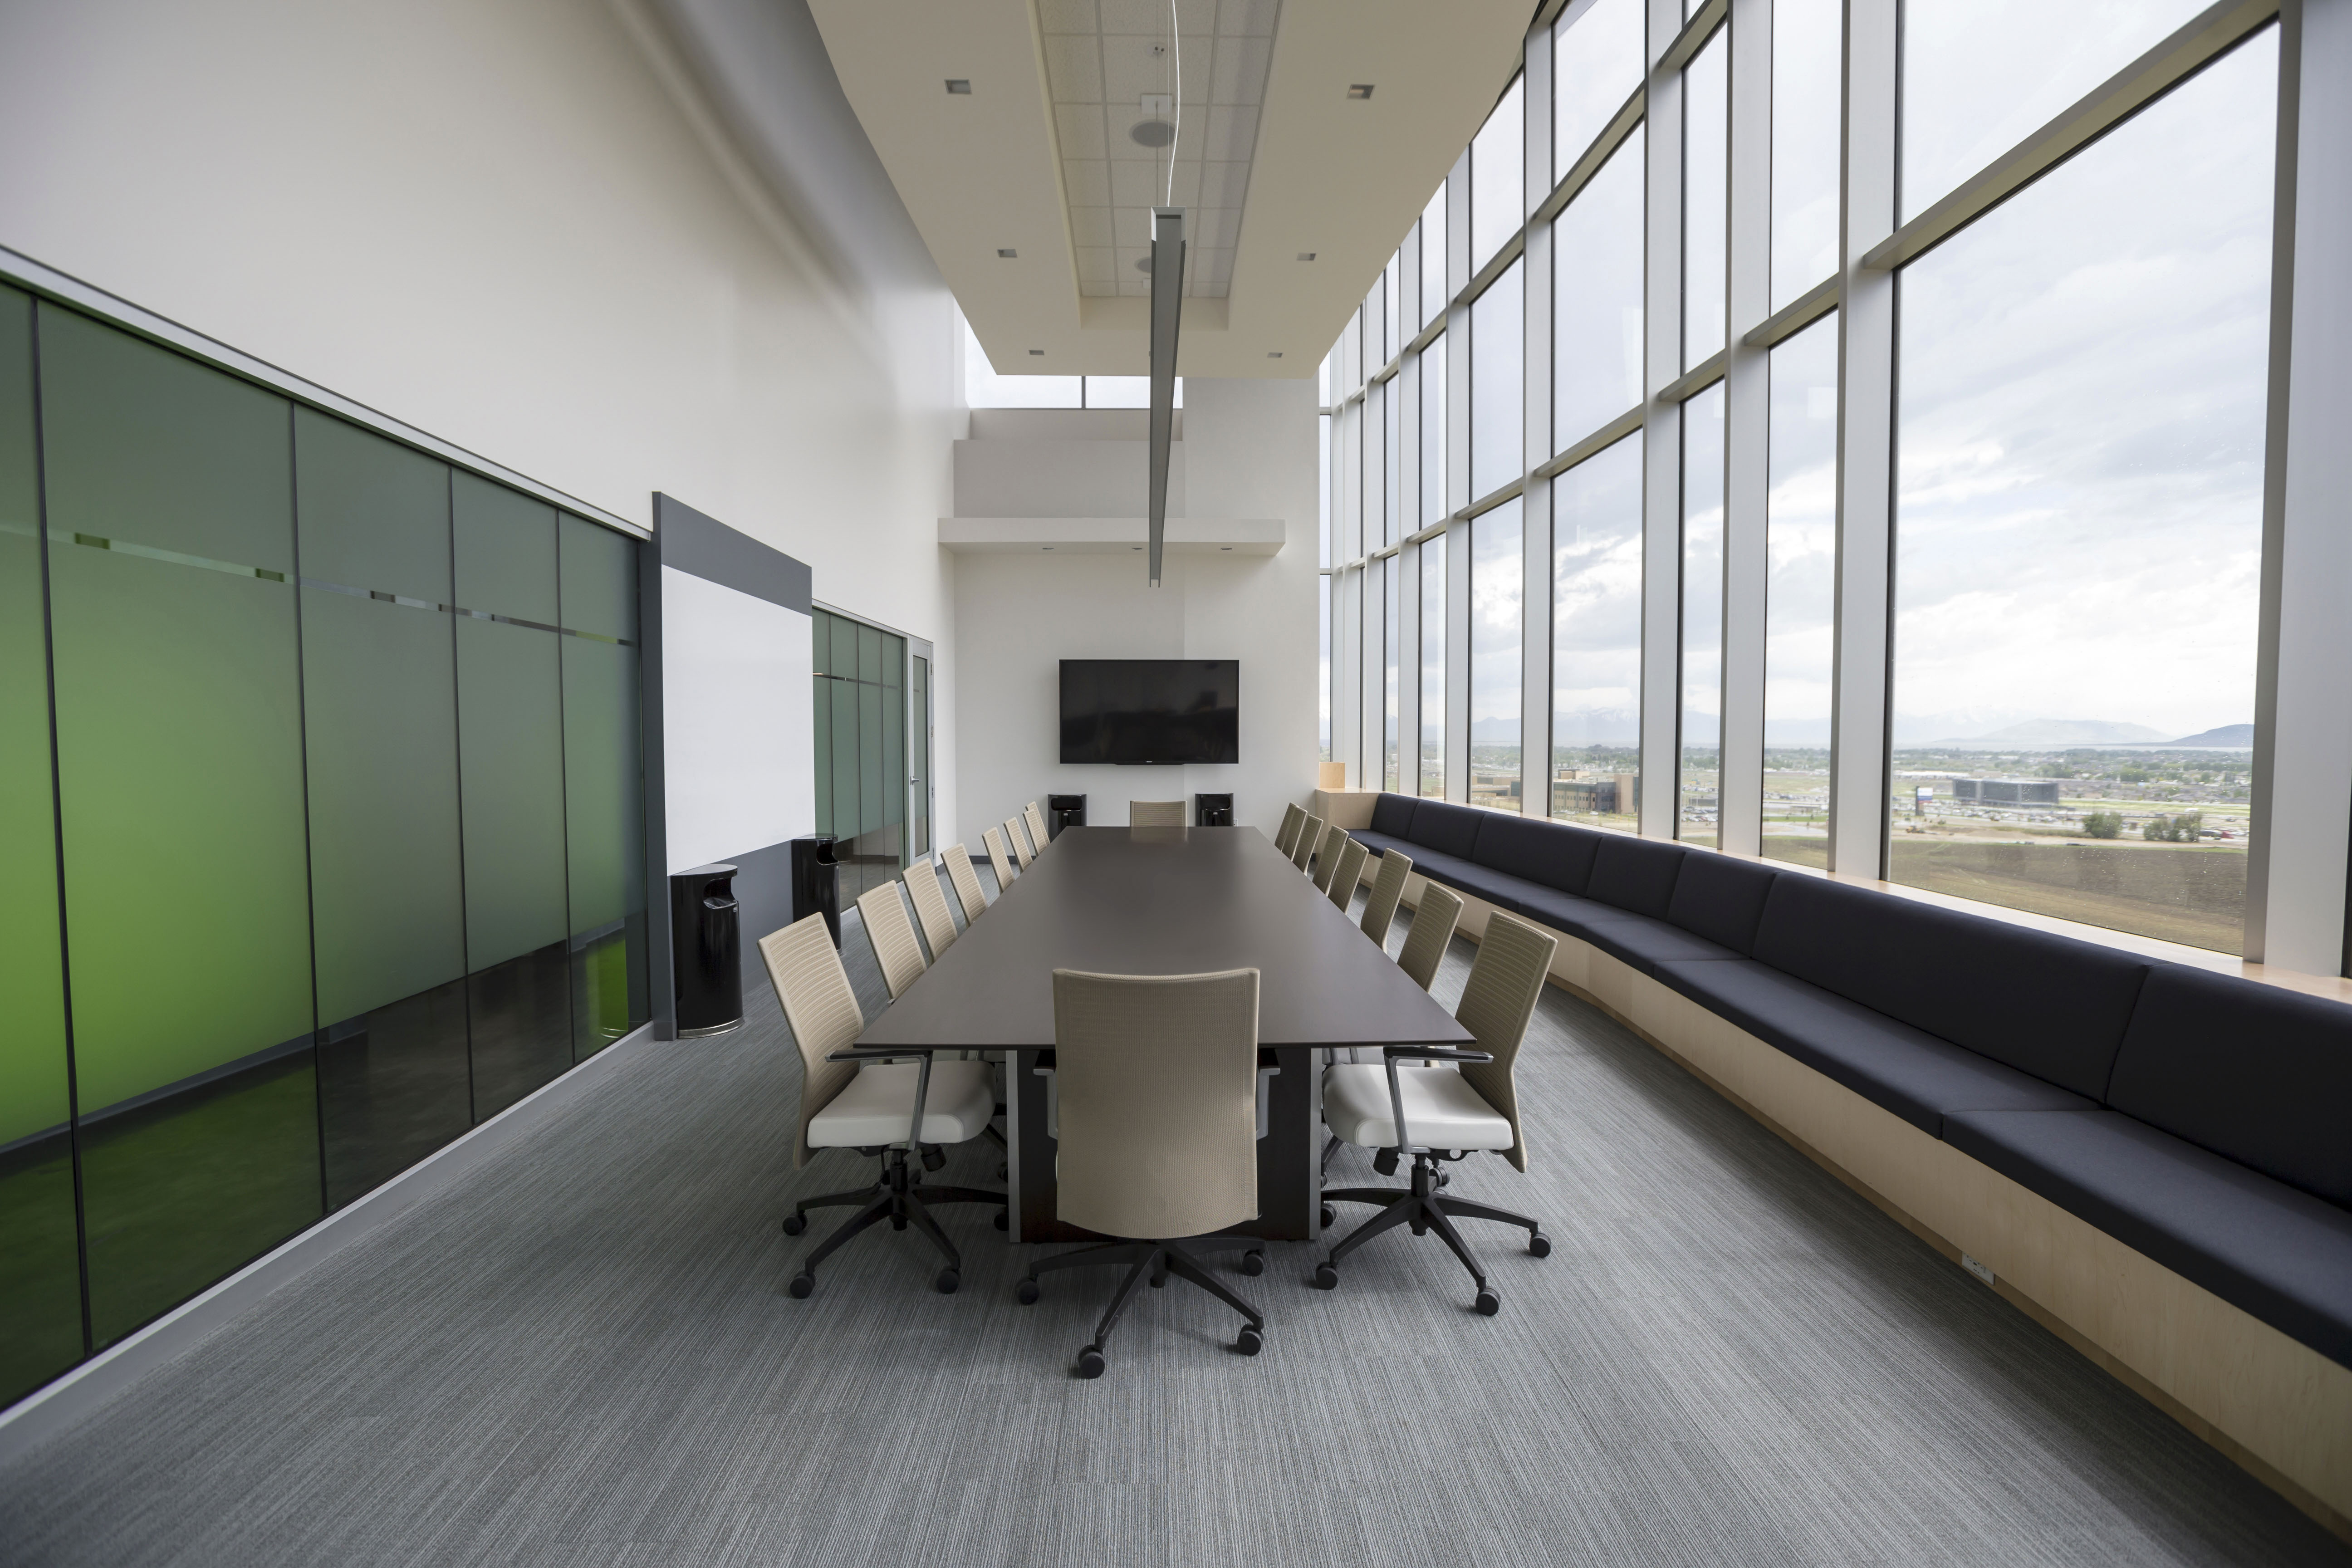 commercial audio visual integration and automation